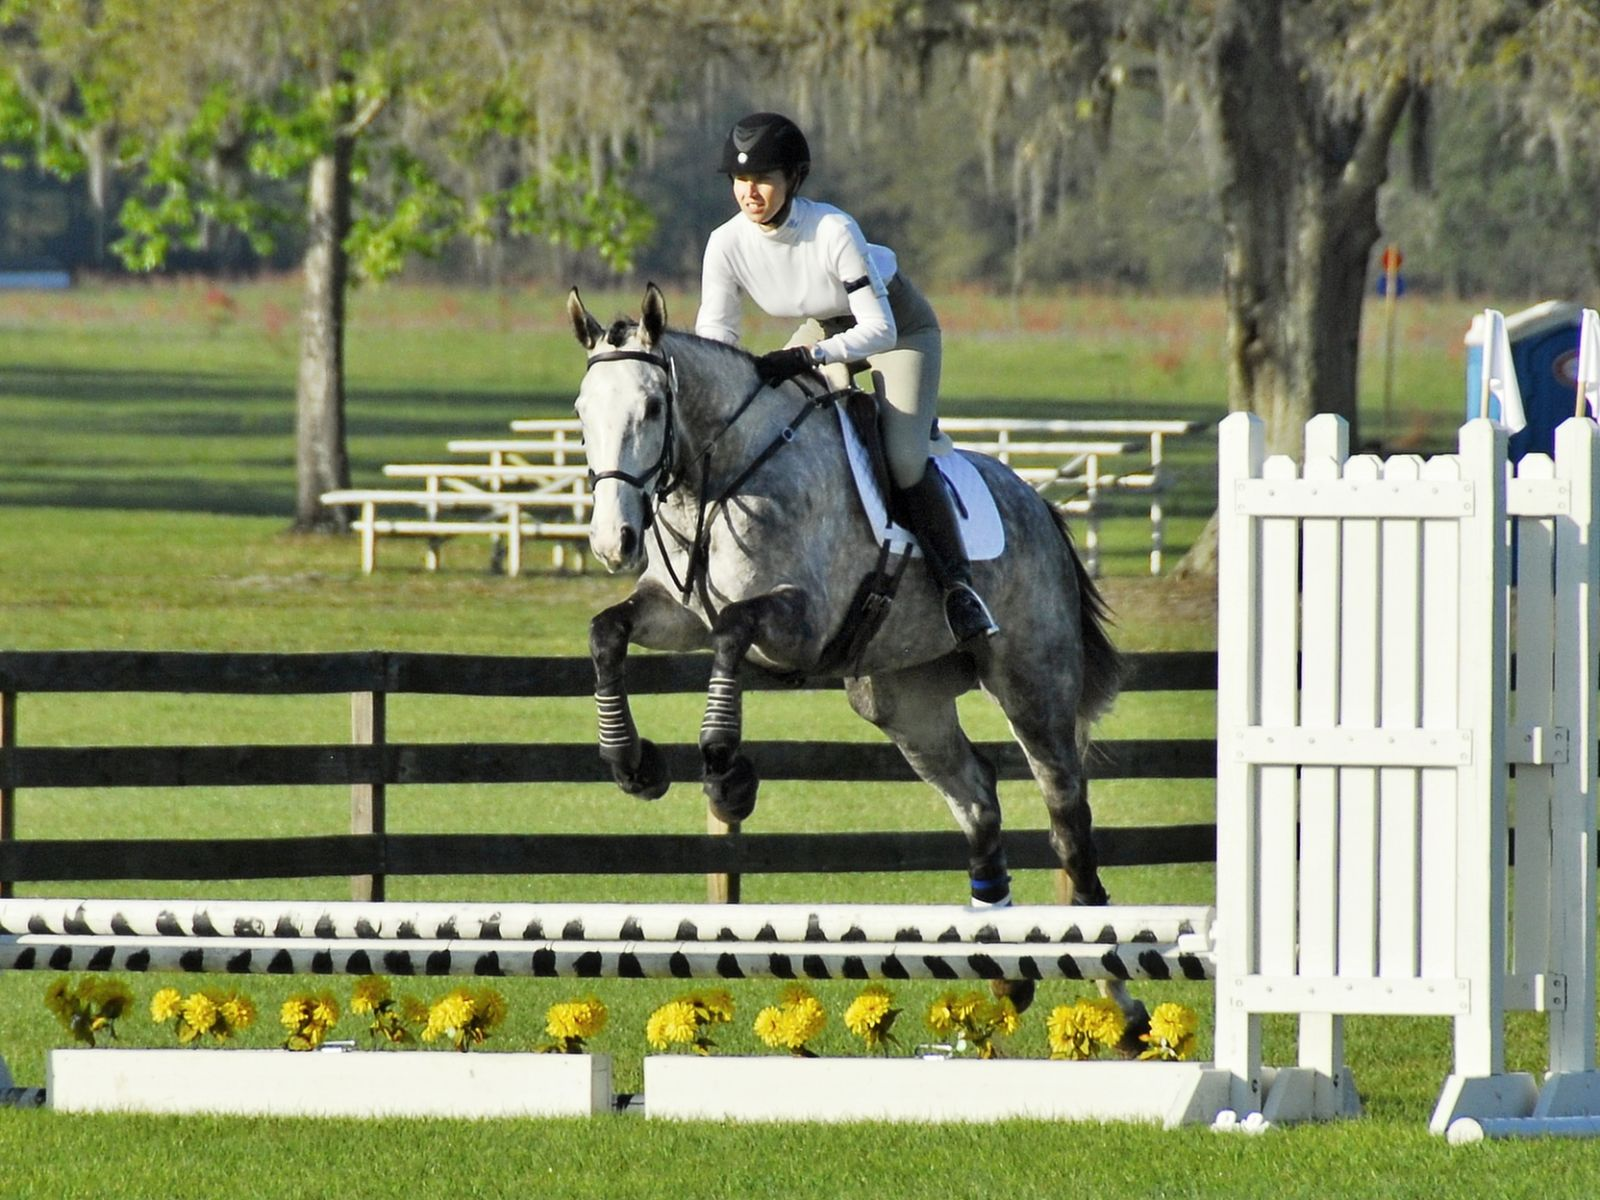 The four-year-old gray filly did well in her first show jumping course.  Photo by Ivegotyourpicture.com.